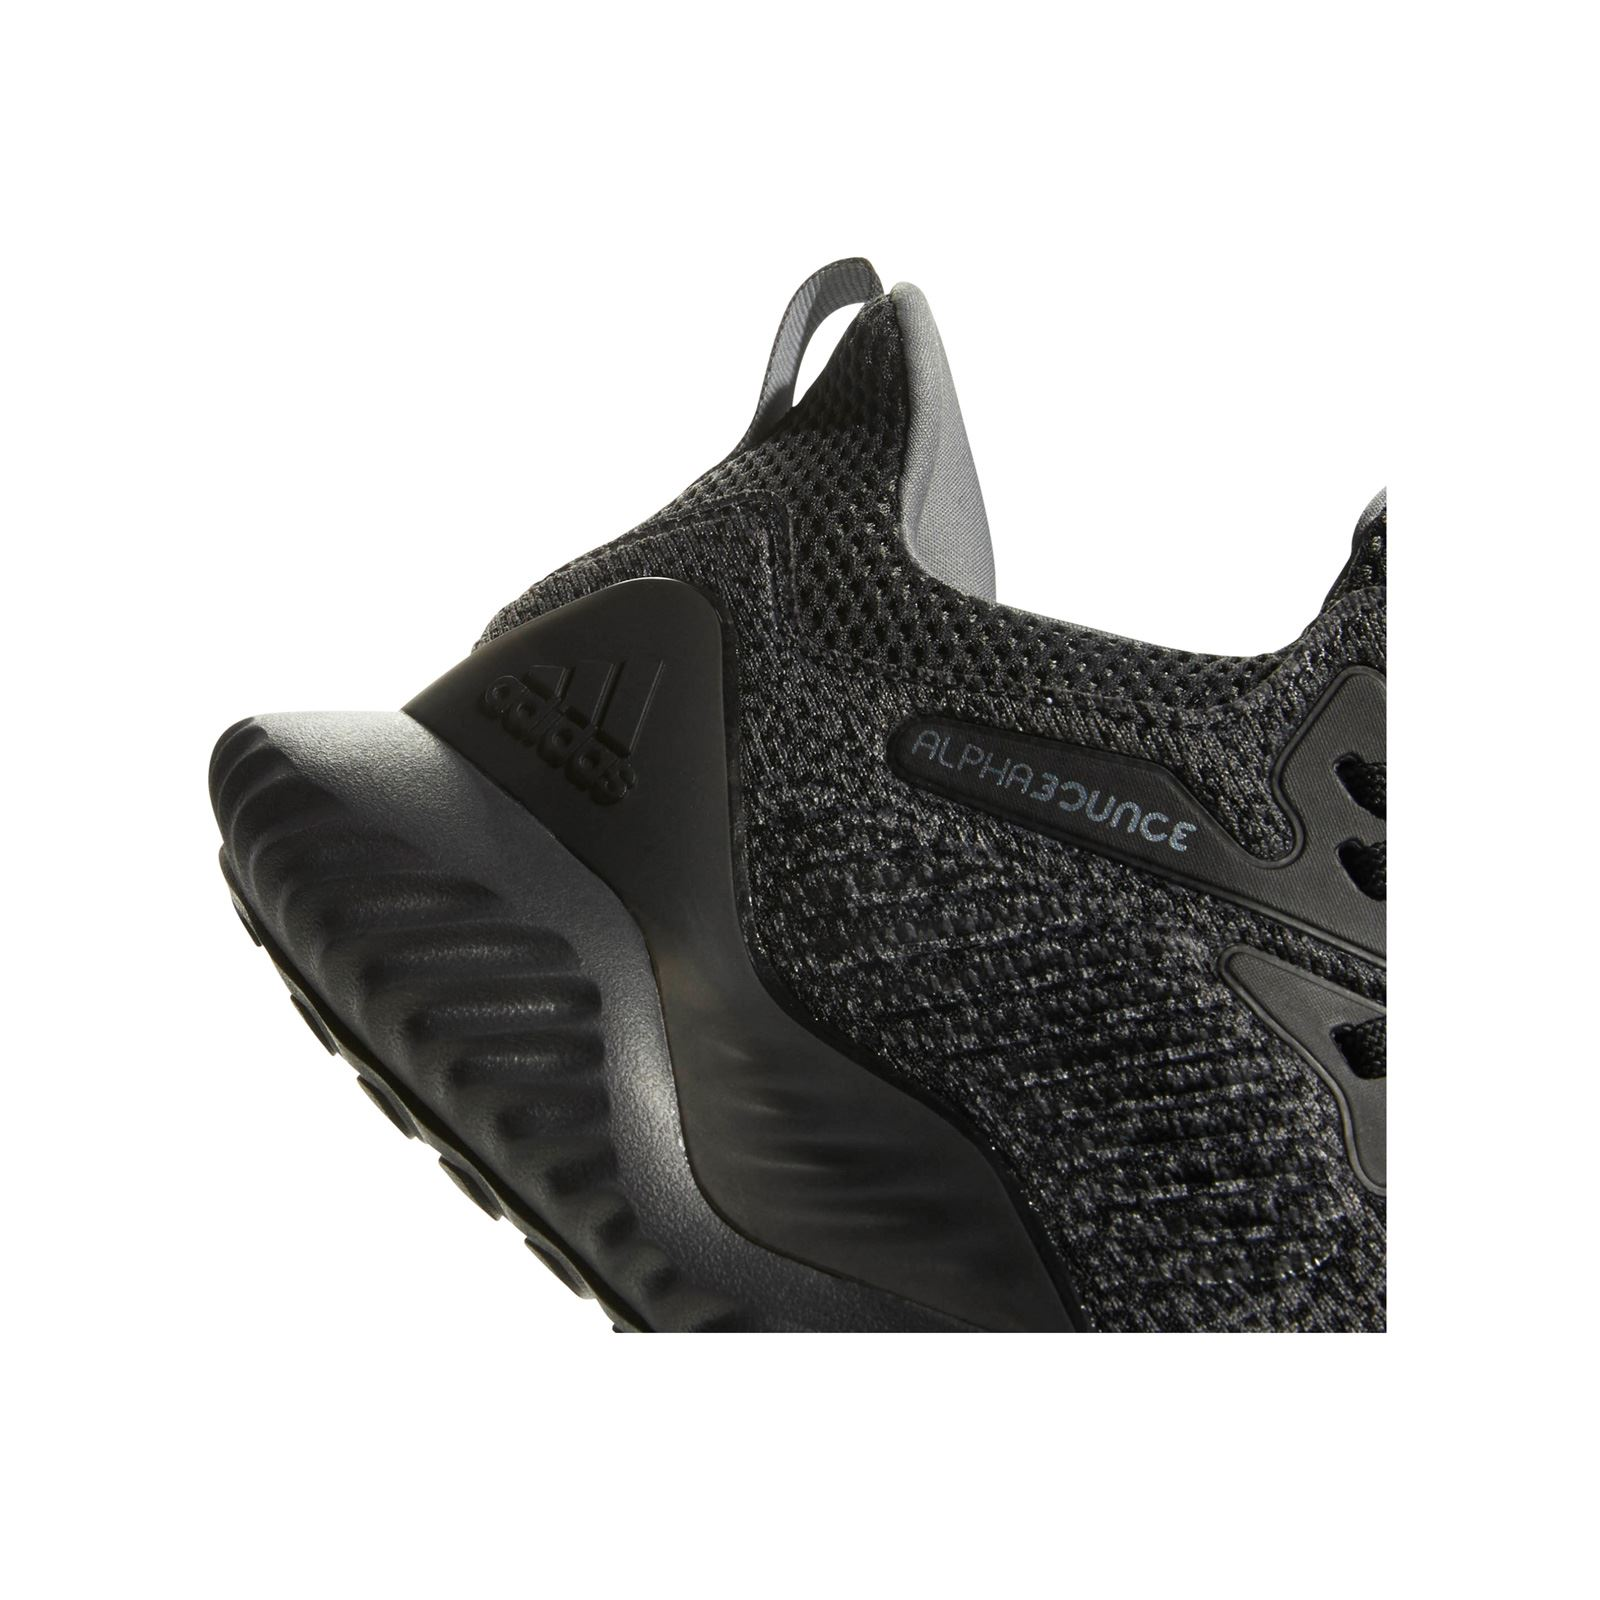 b312d52a06900 adidas Performance Alphabounce Beyond m - Baskets Running - noir ...